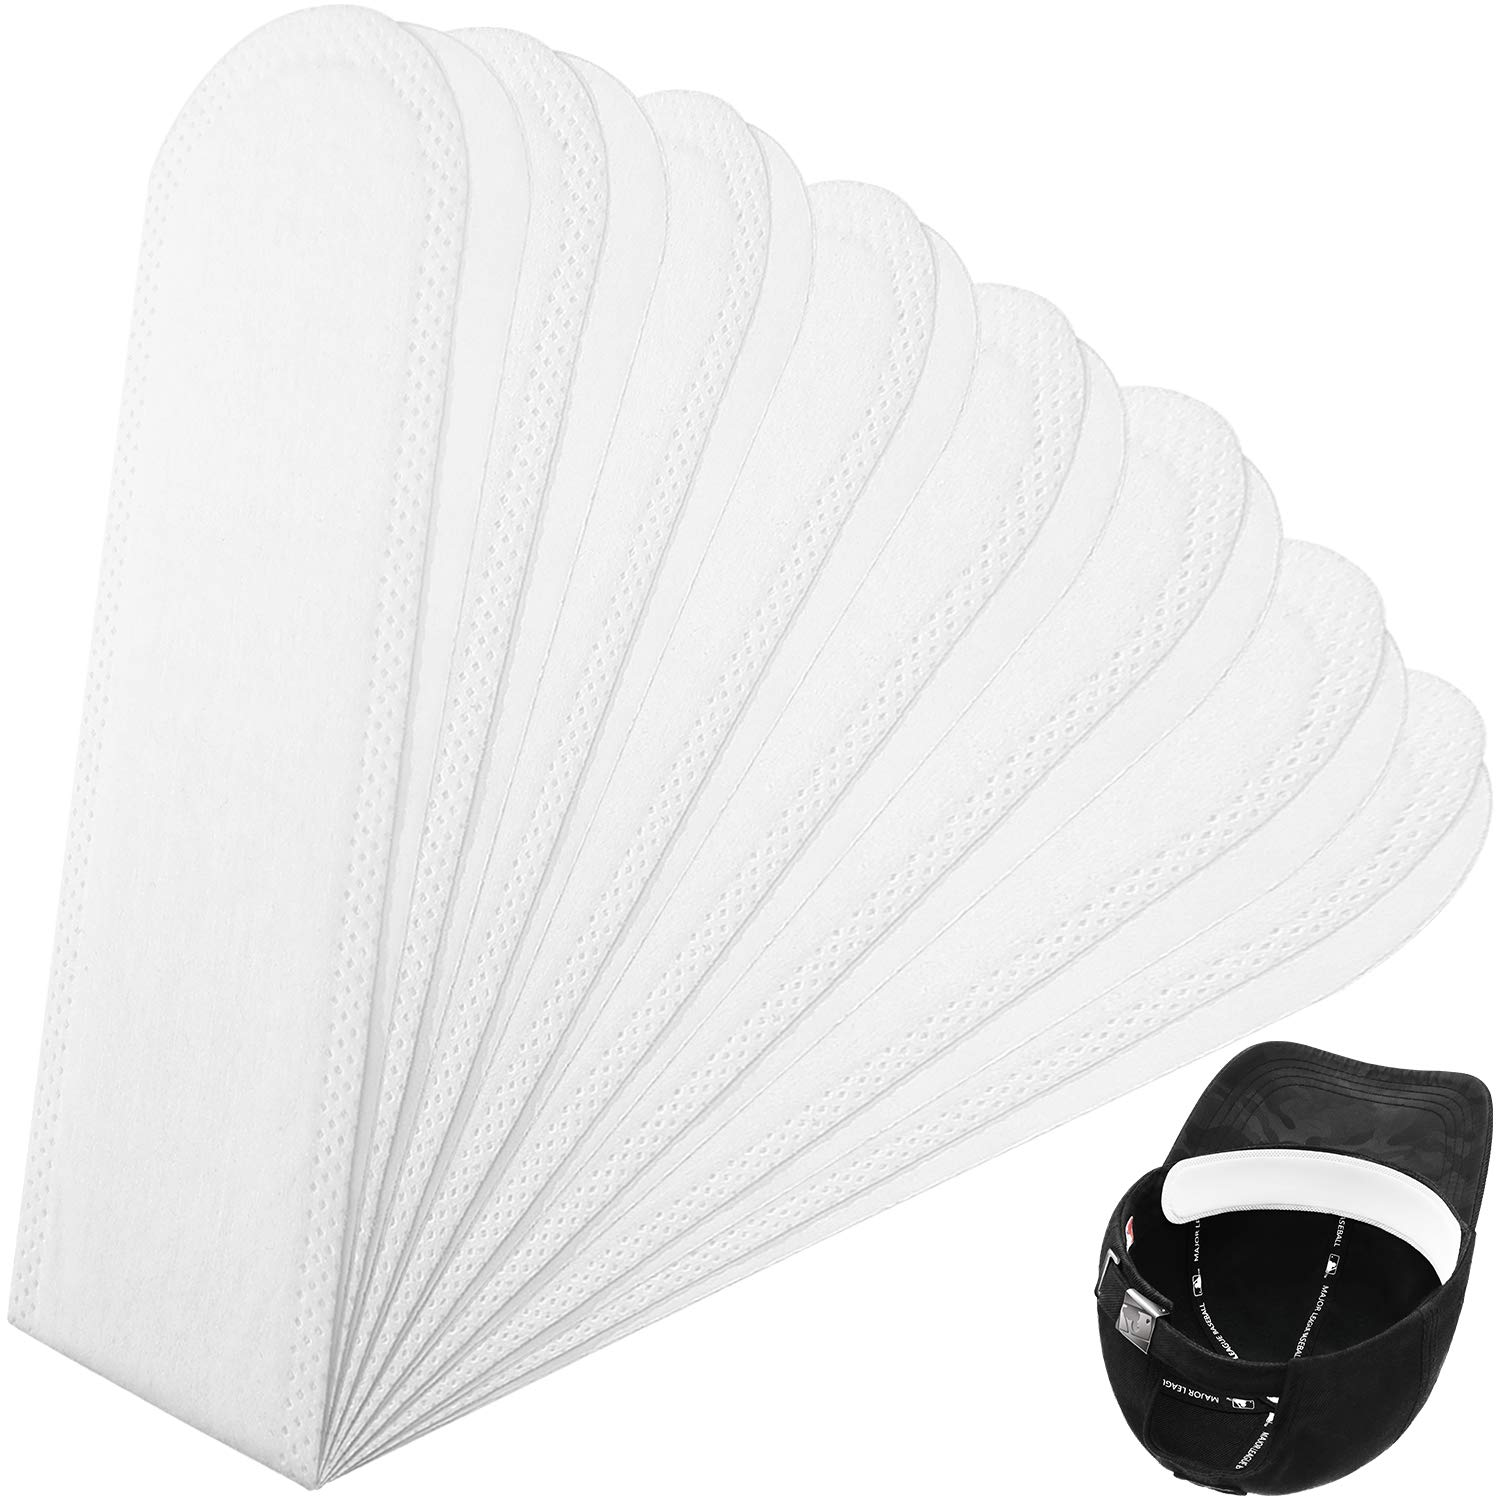 Gejoy 30 Pieces Golf Hat Liner Cap Protection Insert Headband Sweatband Liner Disposable Sweat Pads for Baseball Tennis Hunting Hat Moisture Absorbing Supplies White